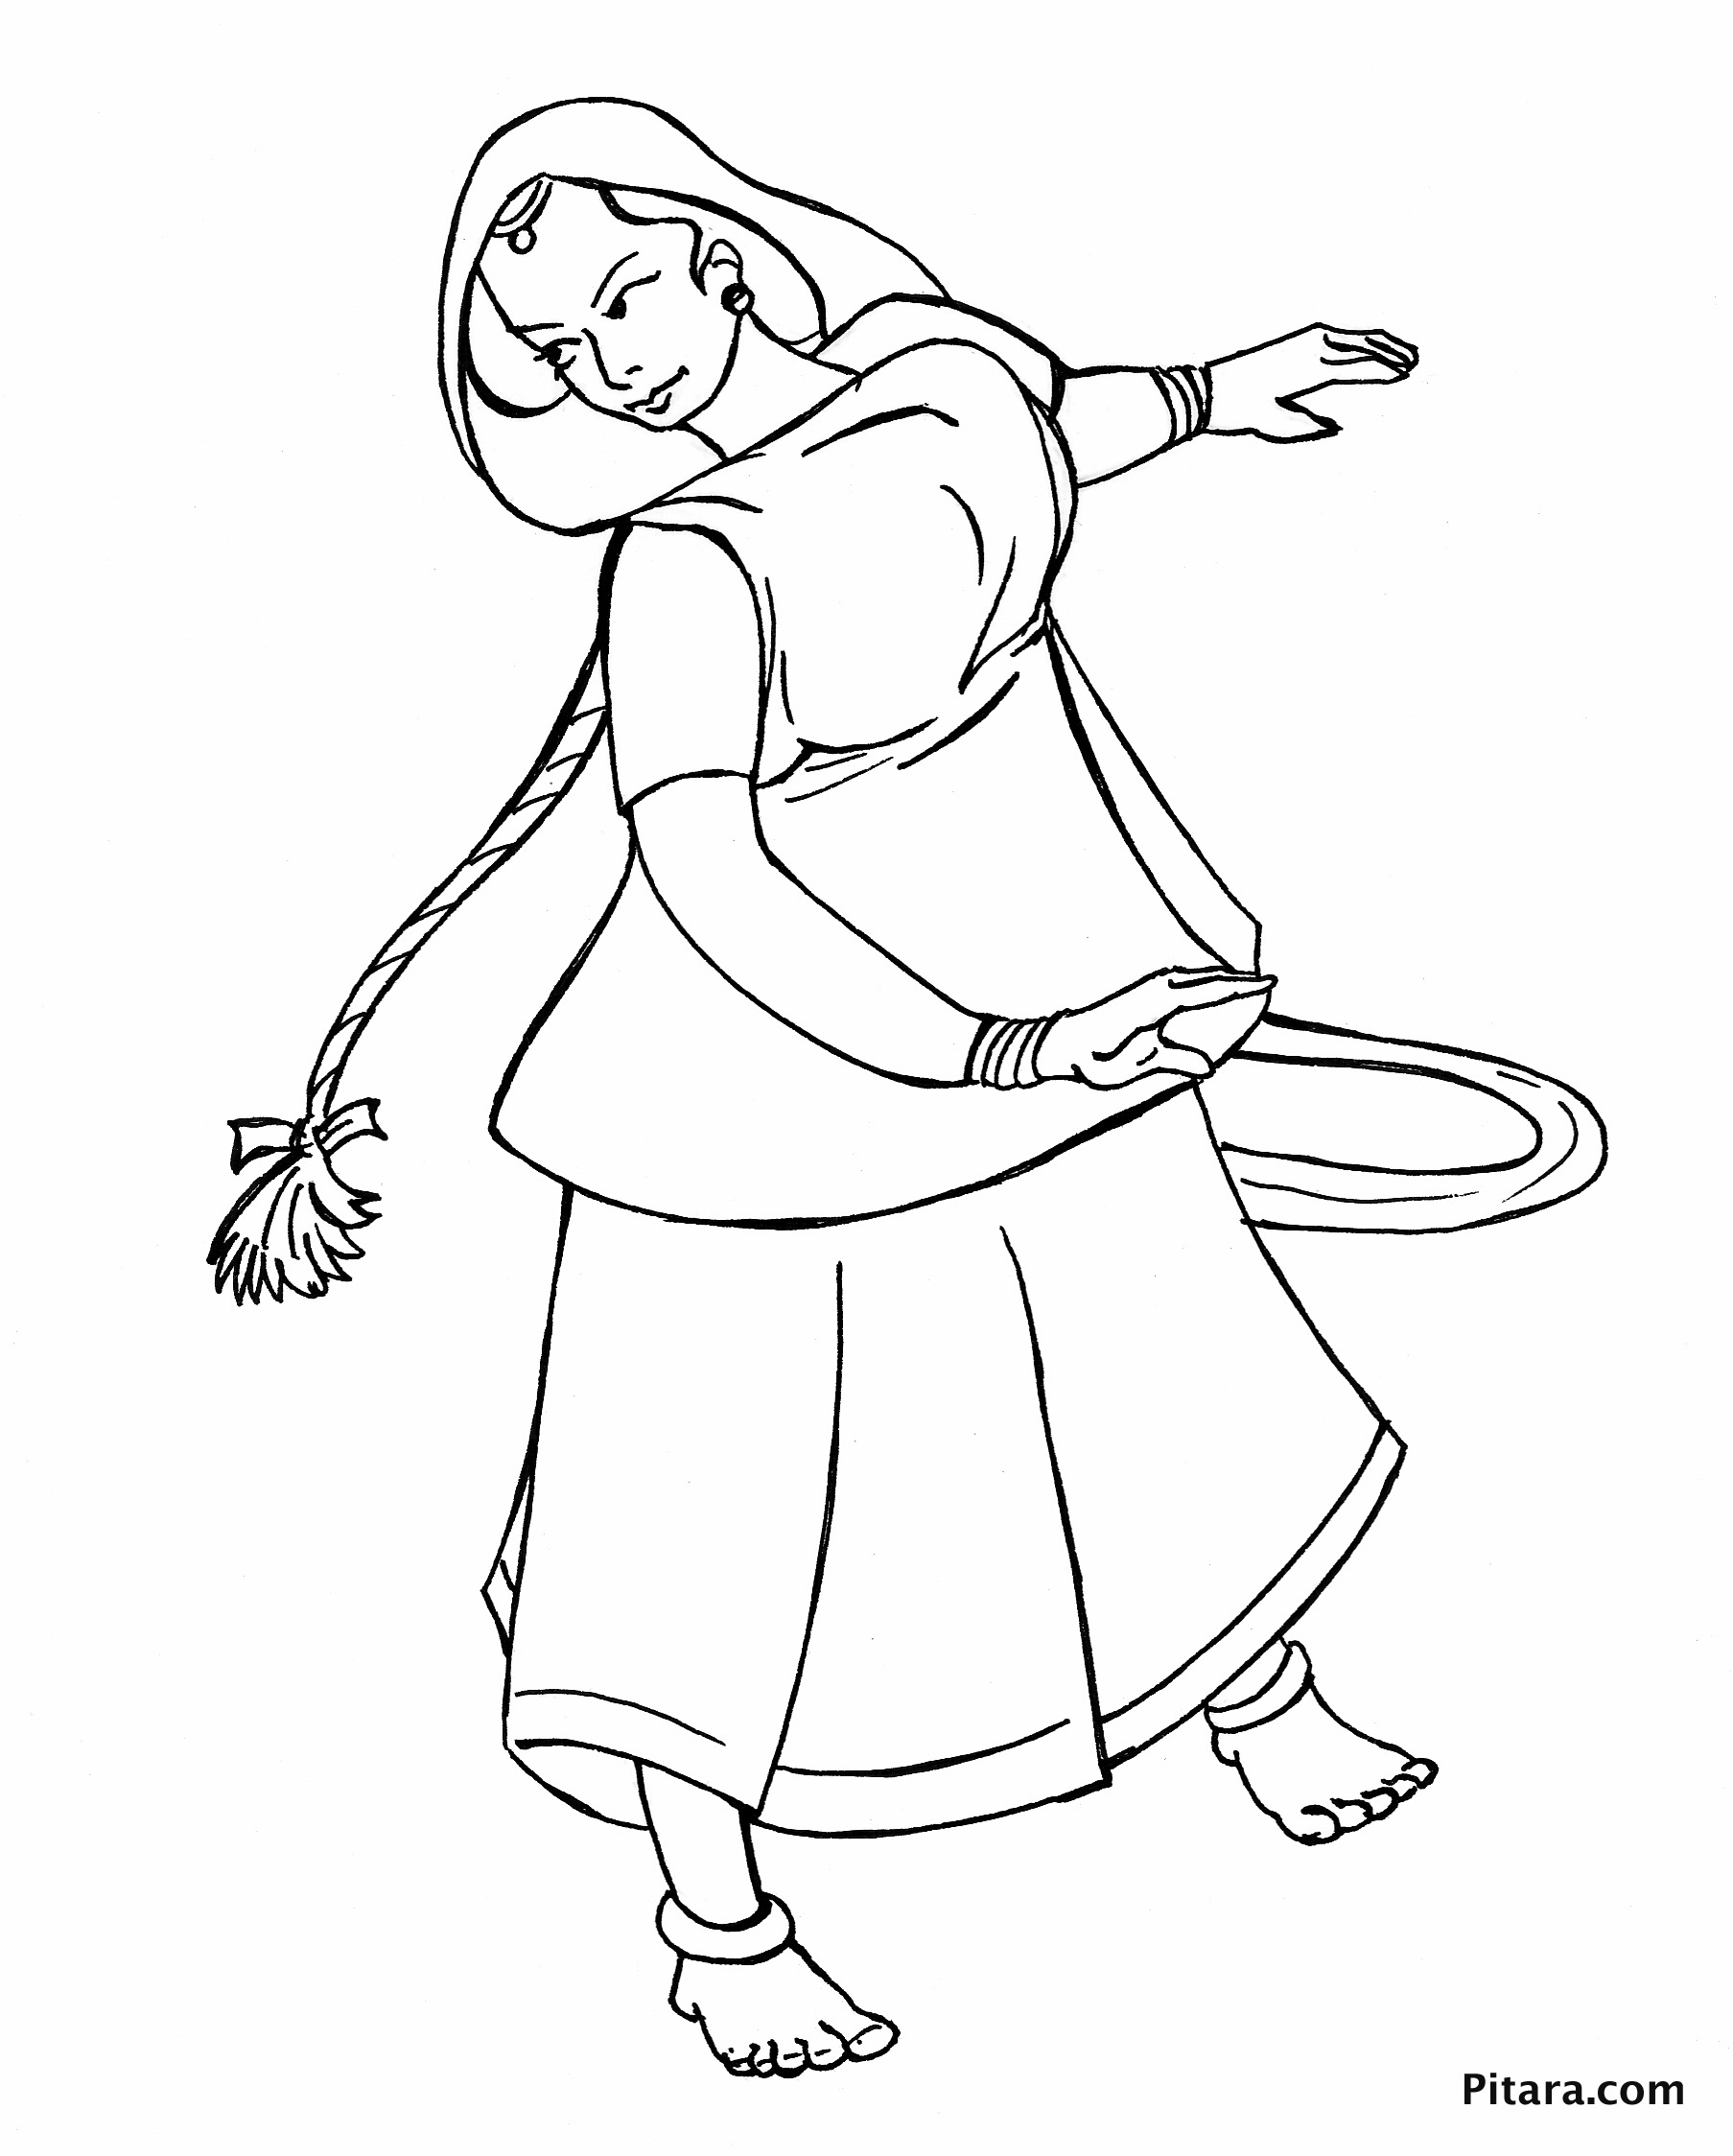 Dancing Styles Coloring Pages